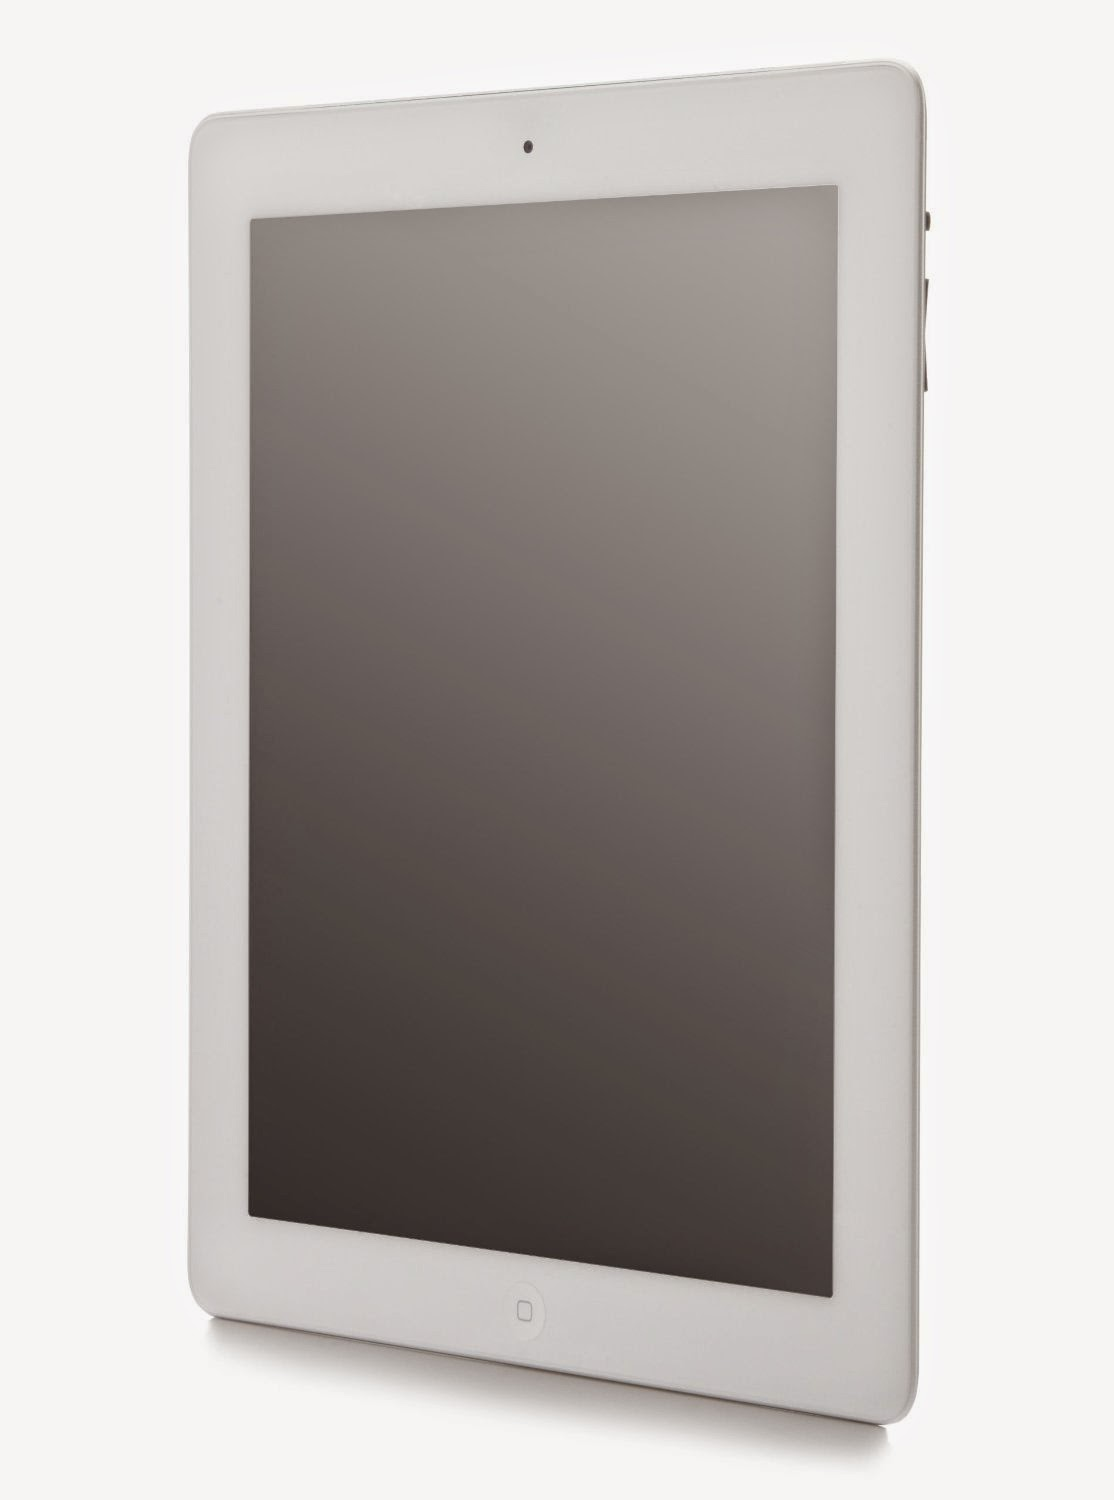 Apple iPad 4th Generation with Retina Display 16GB White full review